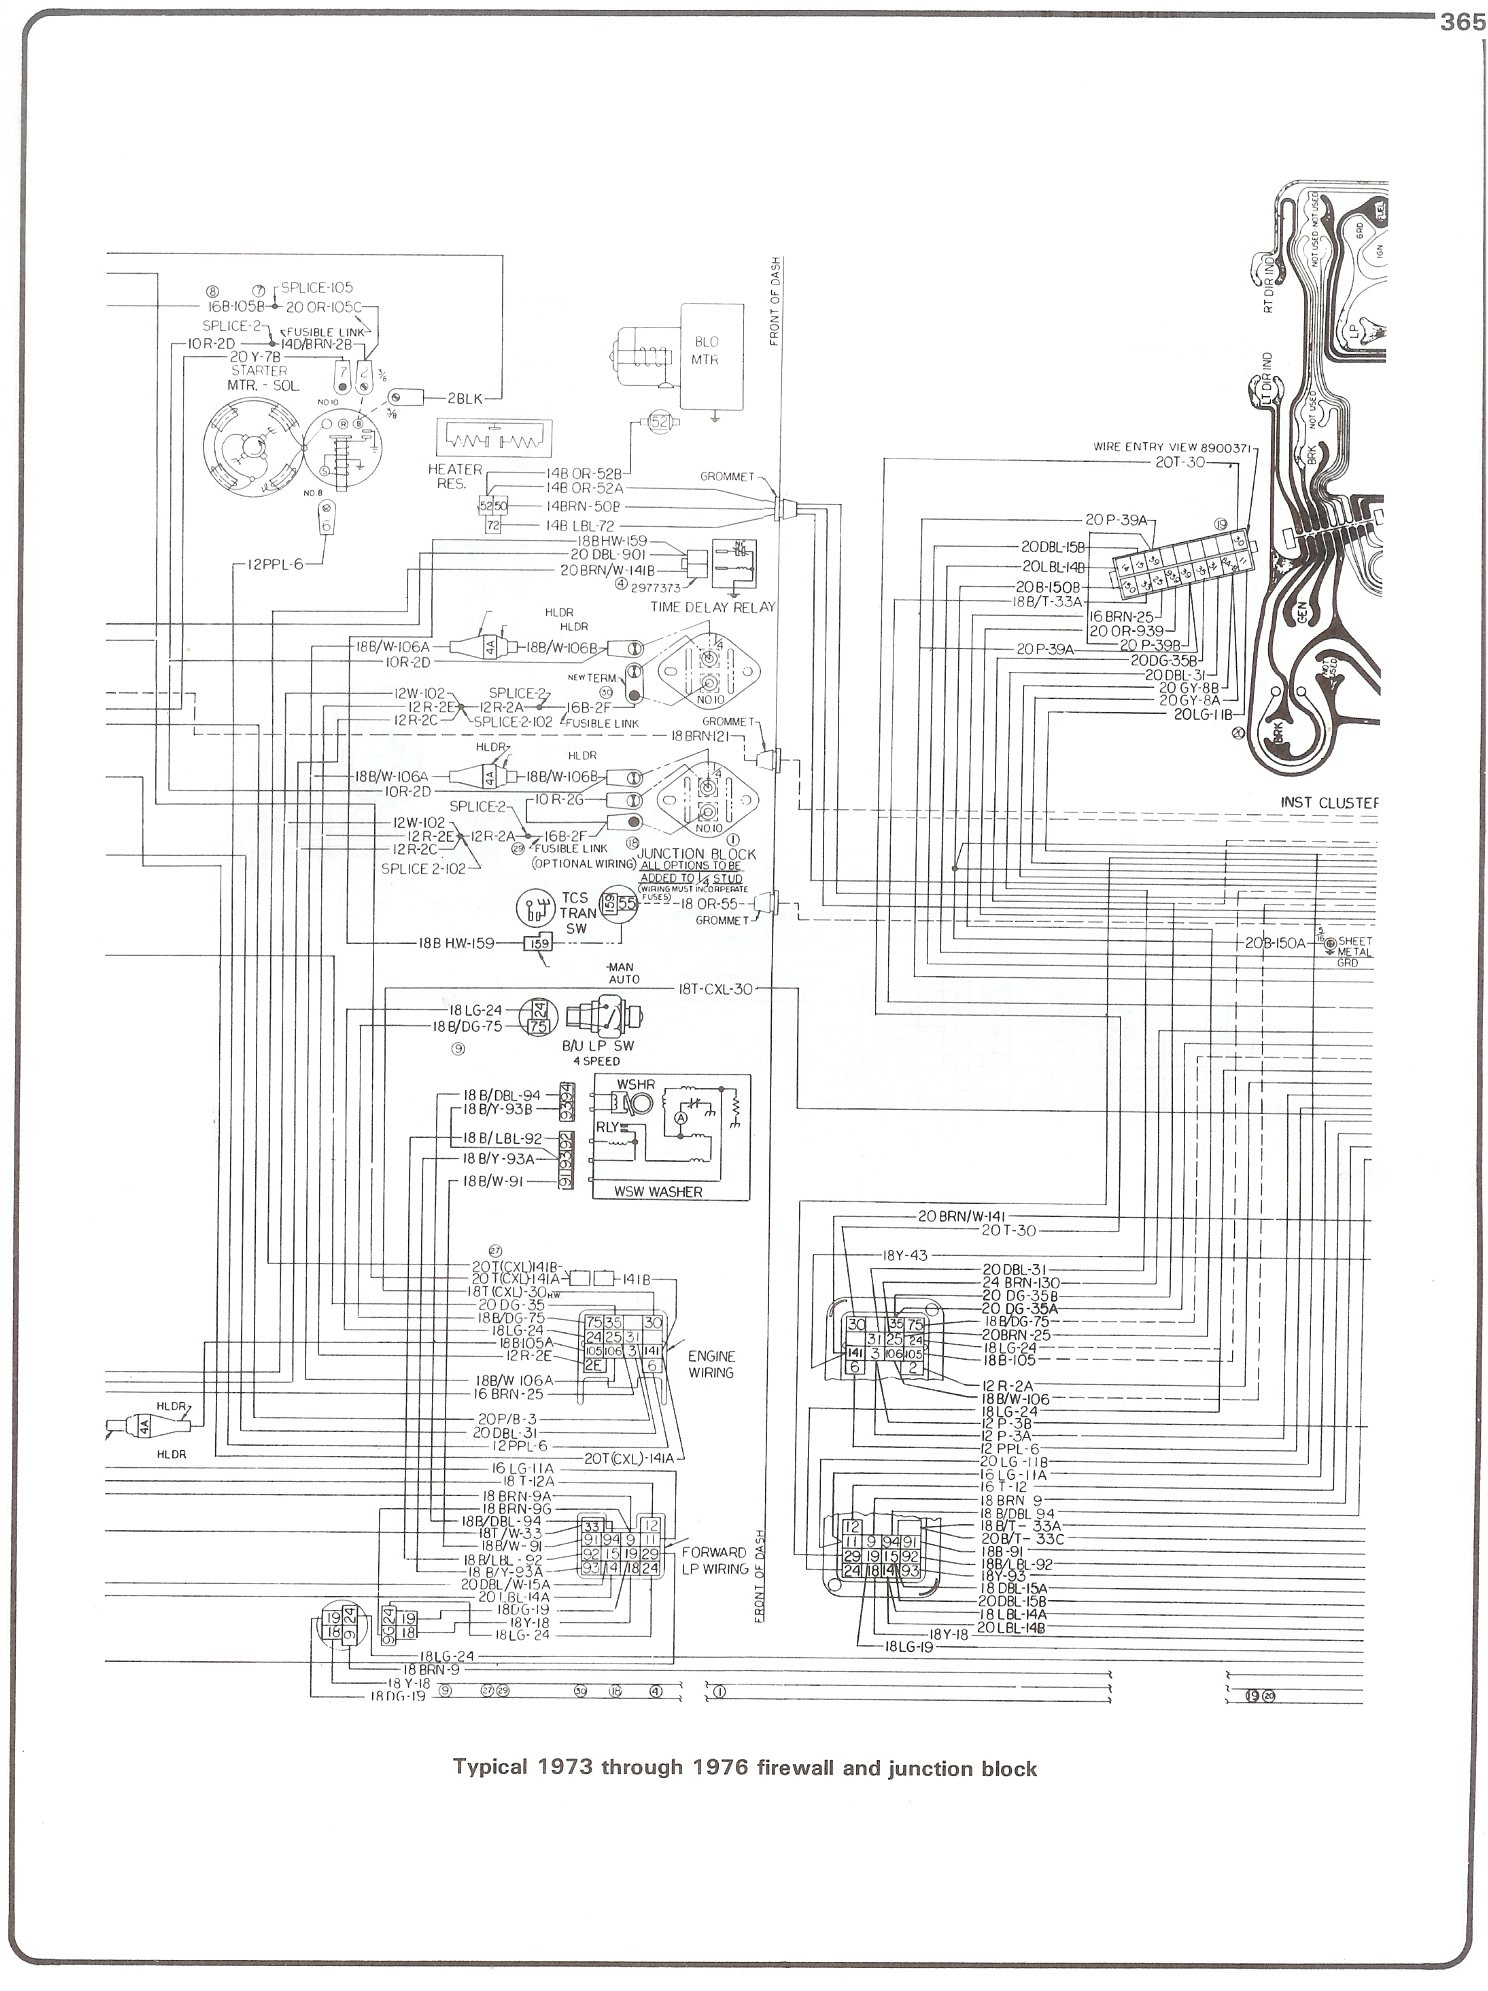 Complete 73 87 Wiring Diagrams 1991 Chevrolet 1500 Diagram Free Download 76 Firewall Junction